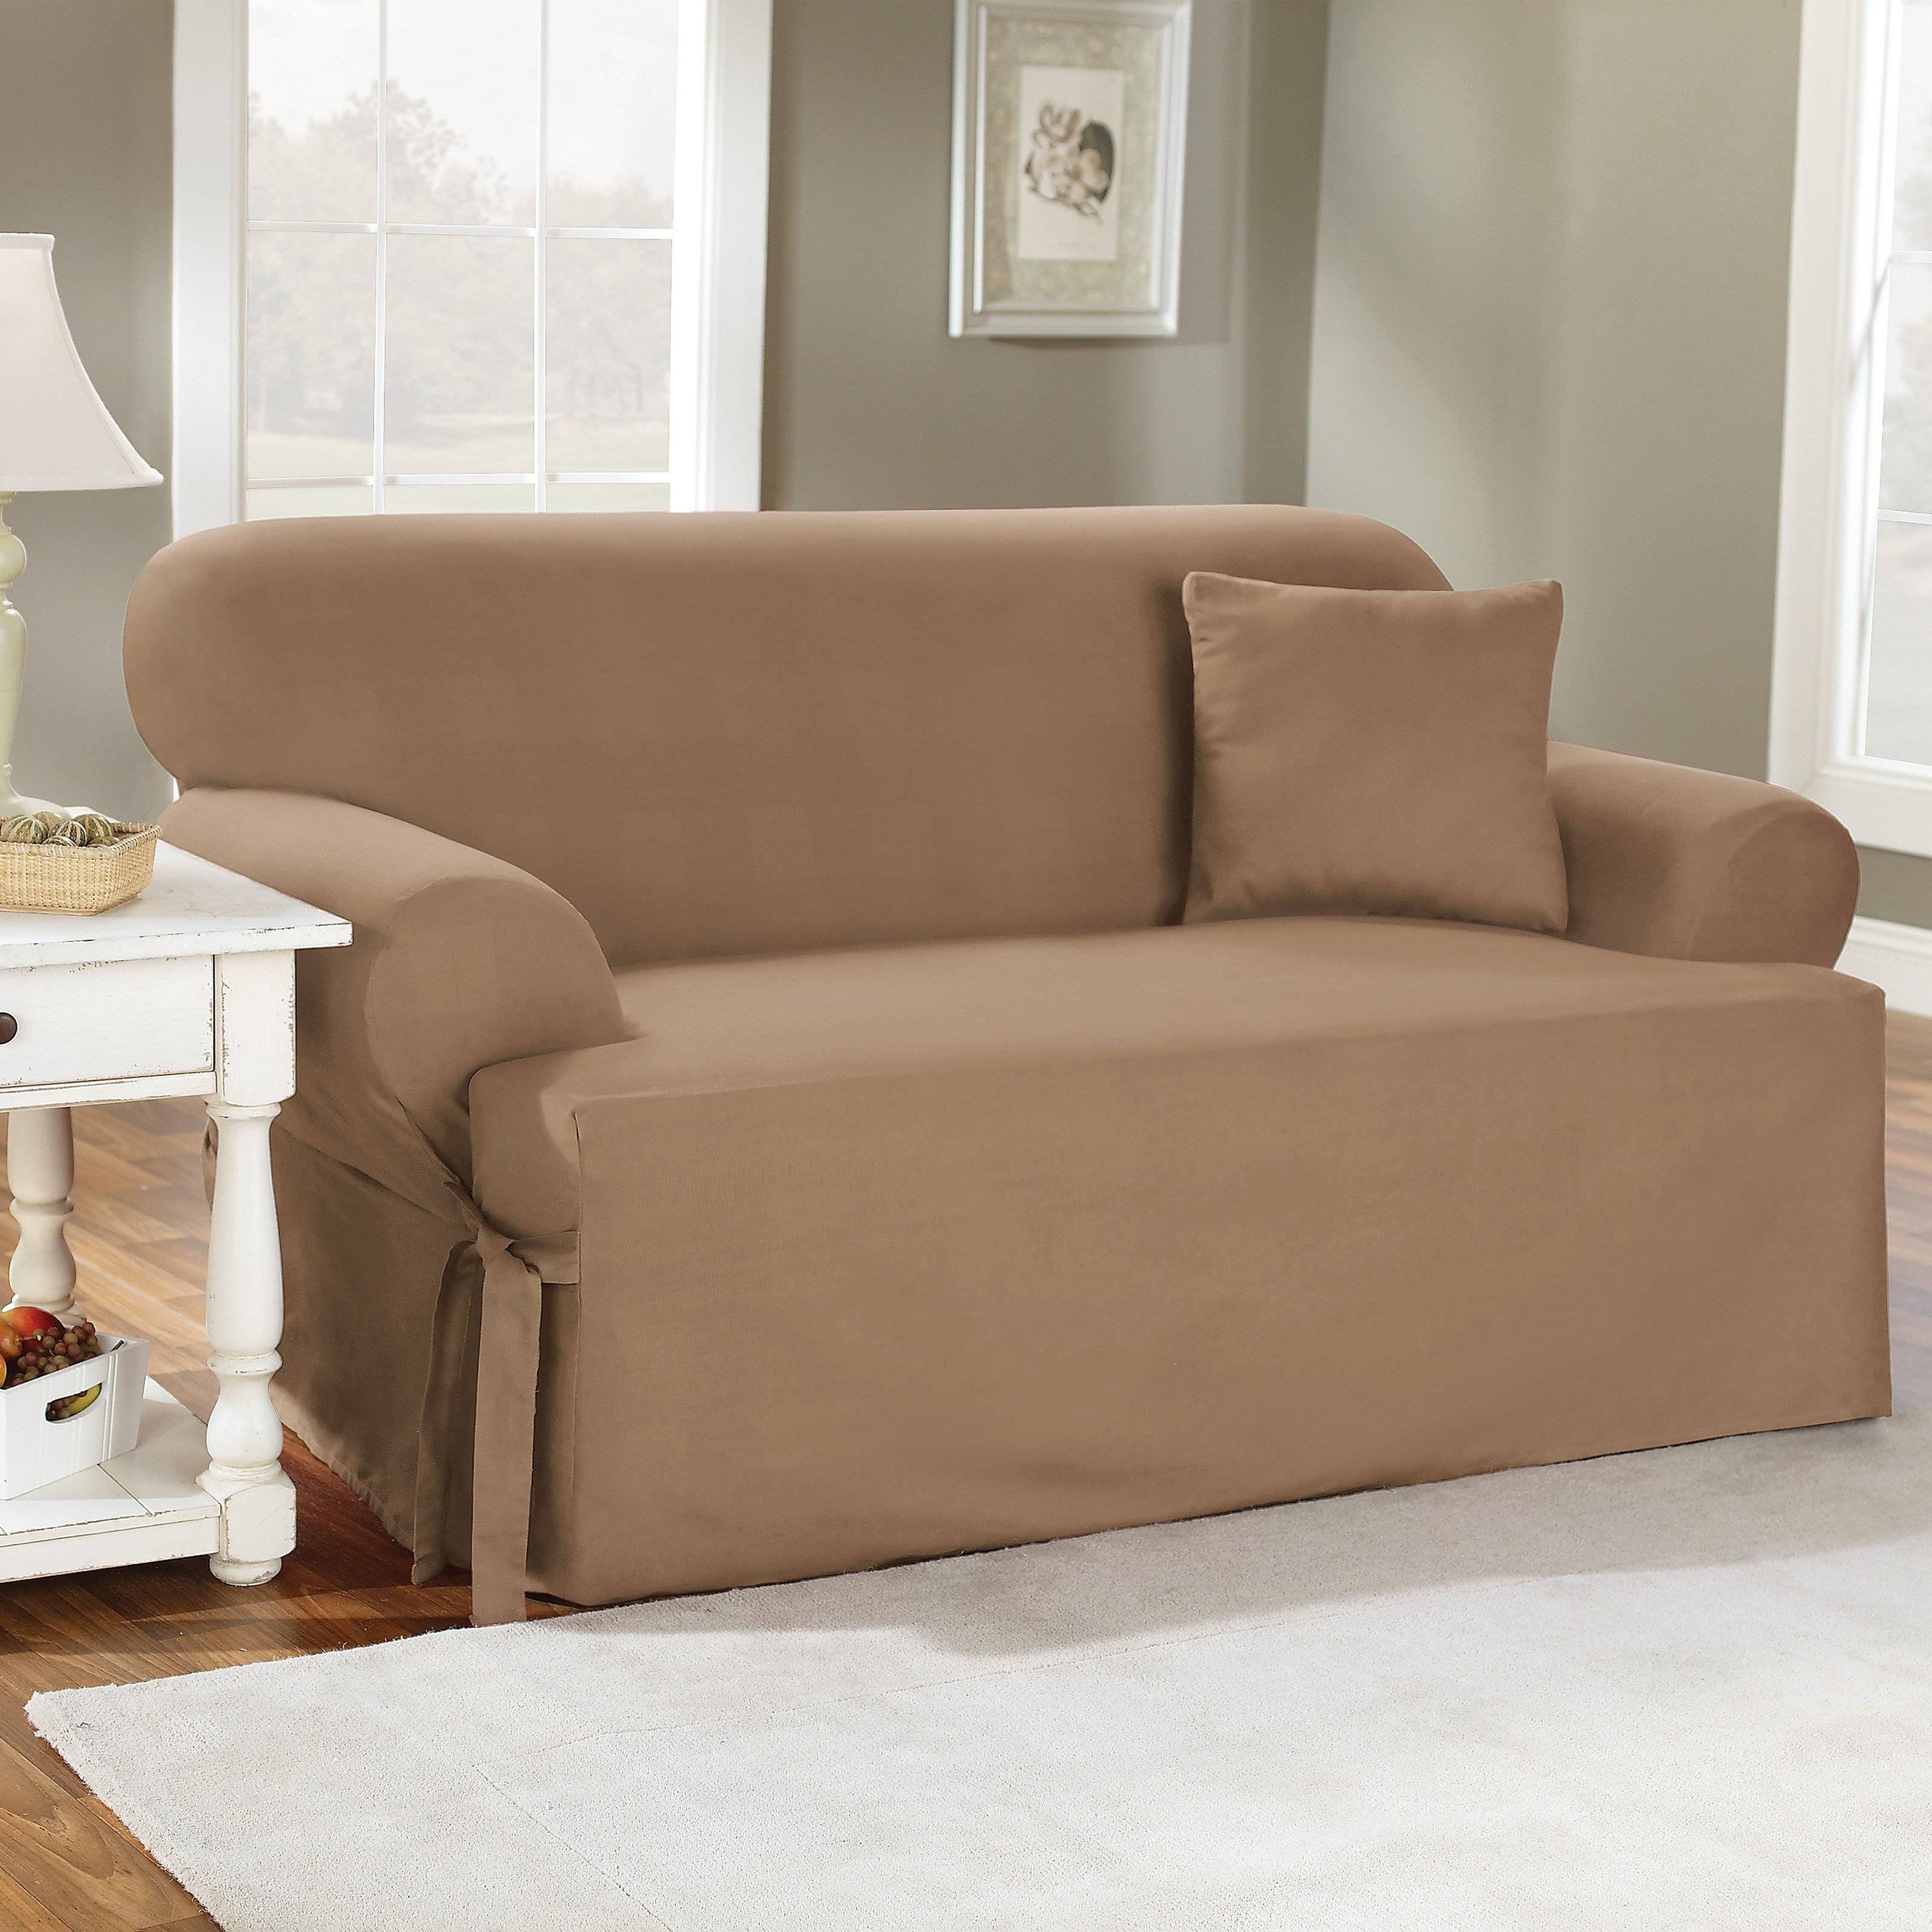 Furniture: Sectional Sofa Covers | Couch Covers For Sectionals inside Black Sofa Slipcovers (Image 6 of 15)